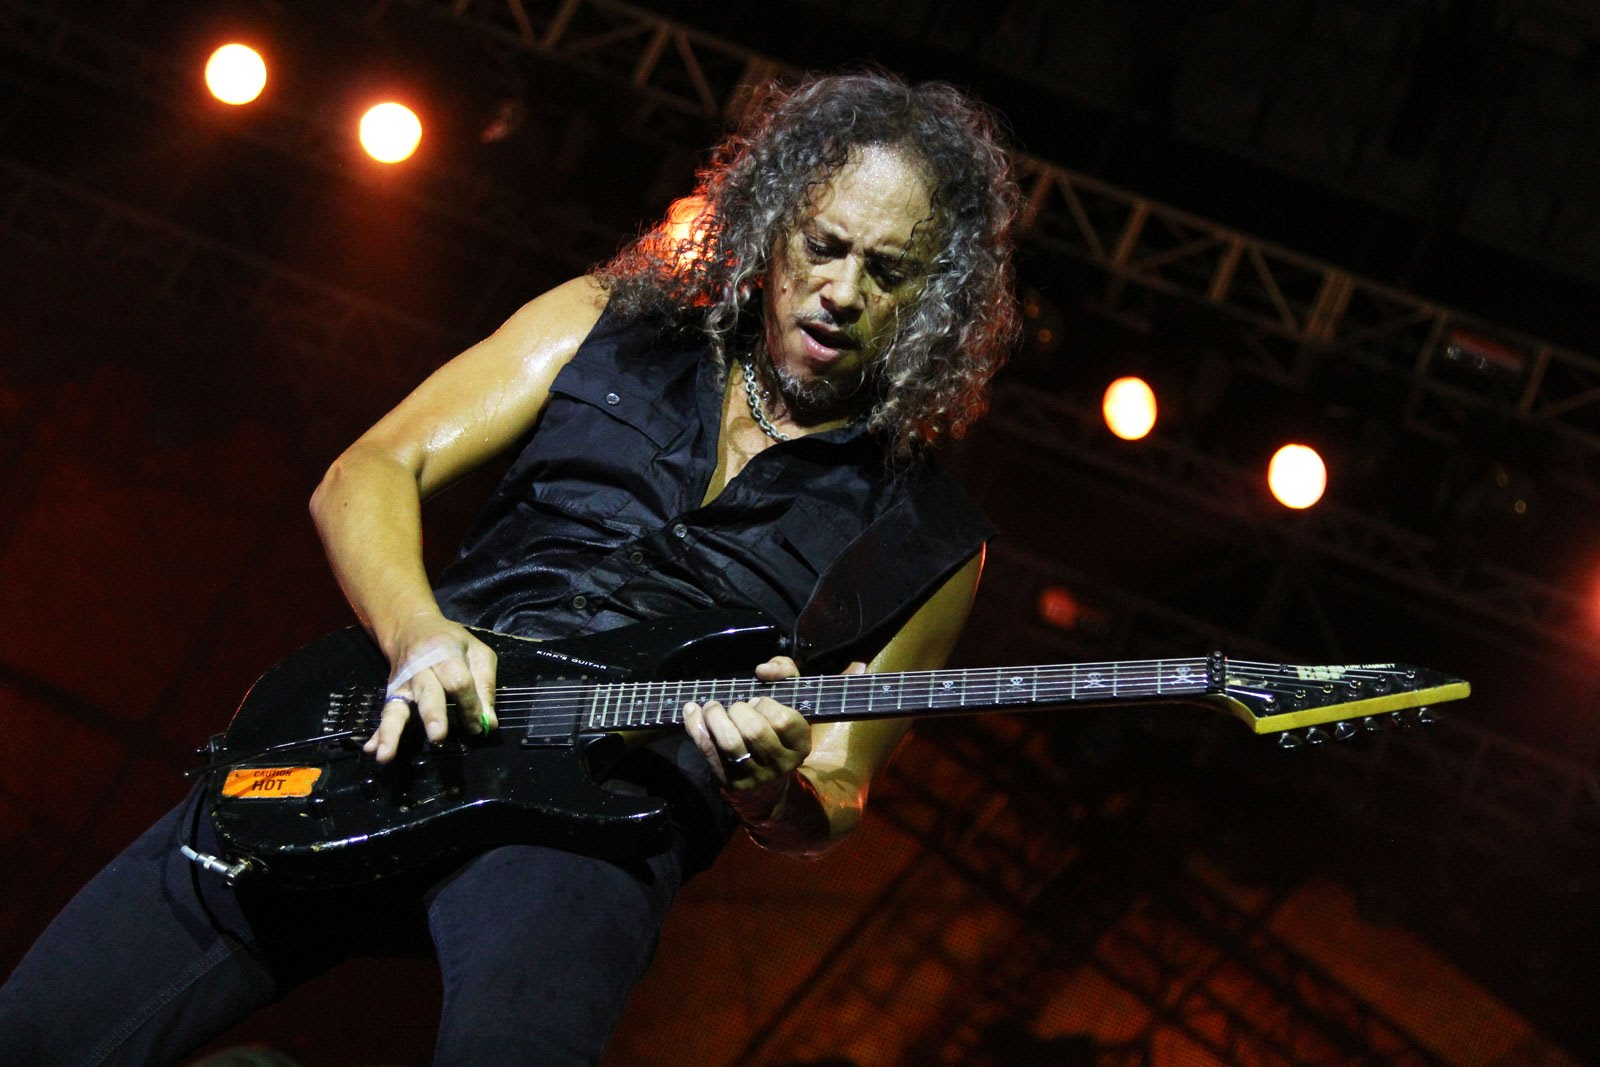 kirk-hammett-guitar-setup-and-rig-rundown